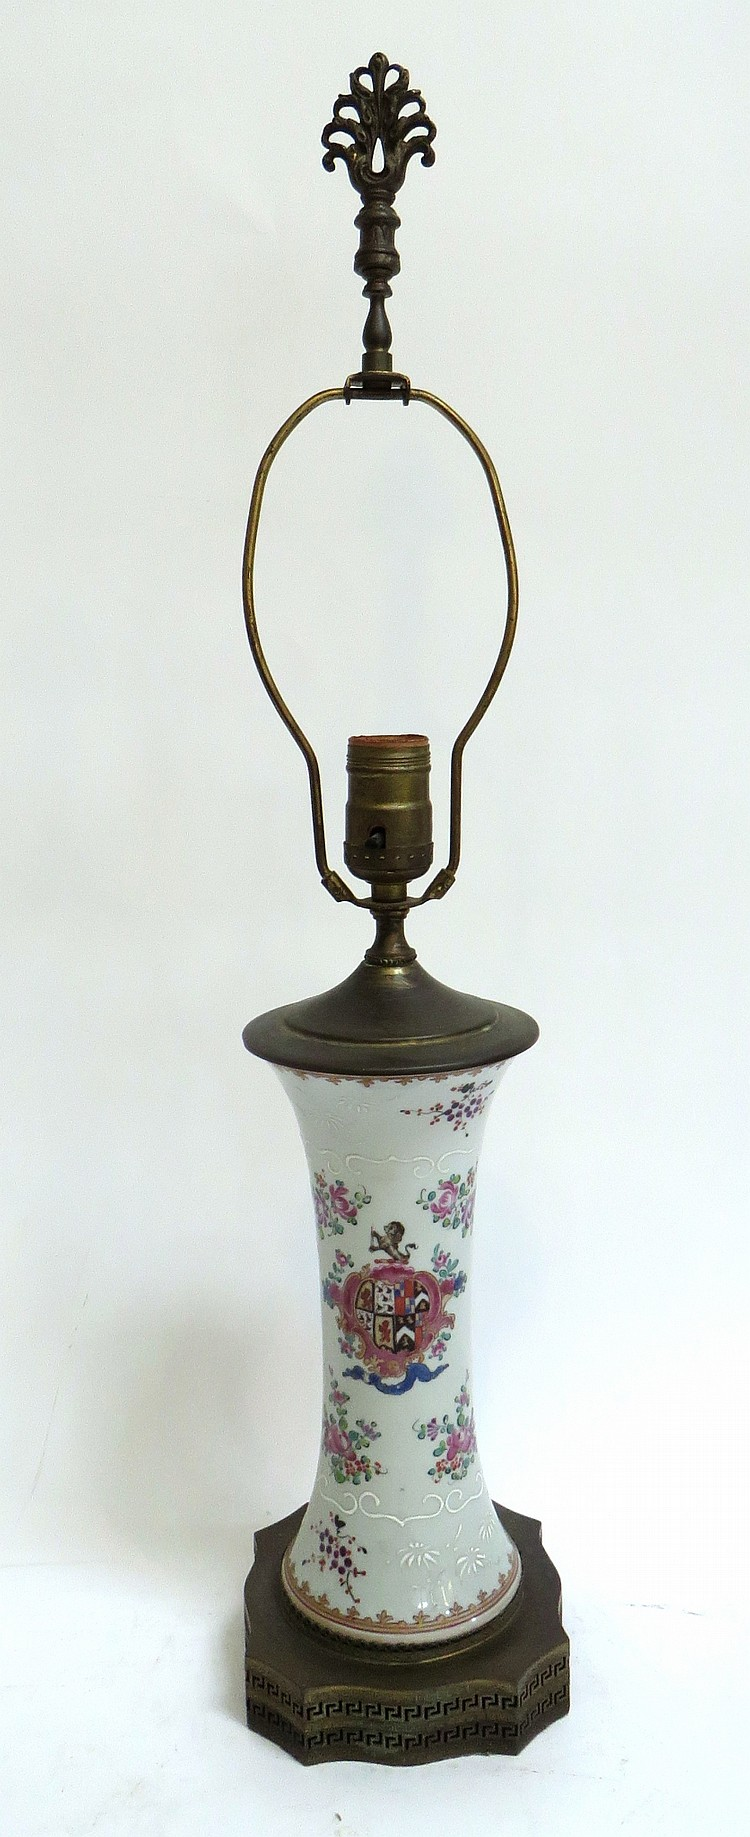 LAMP WITH ANTIQUE PORCELAIN BASE